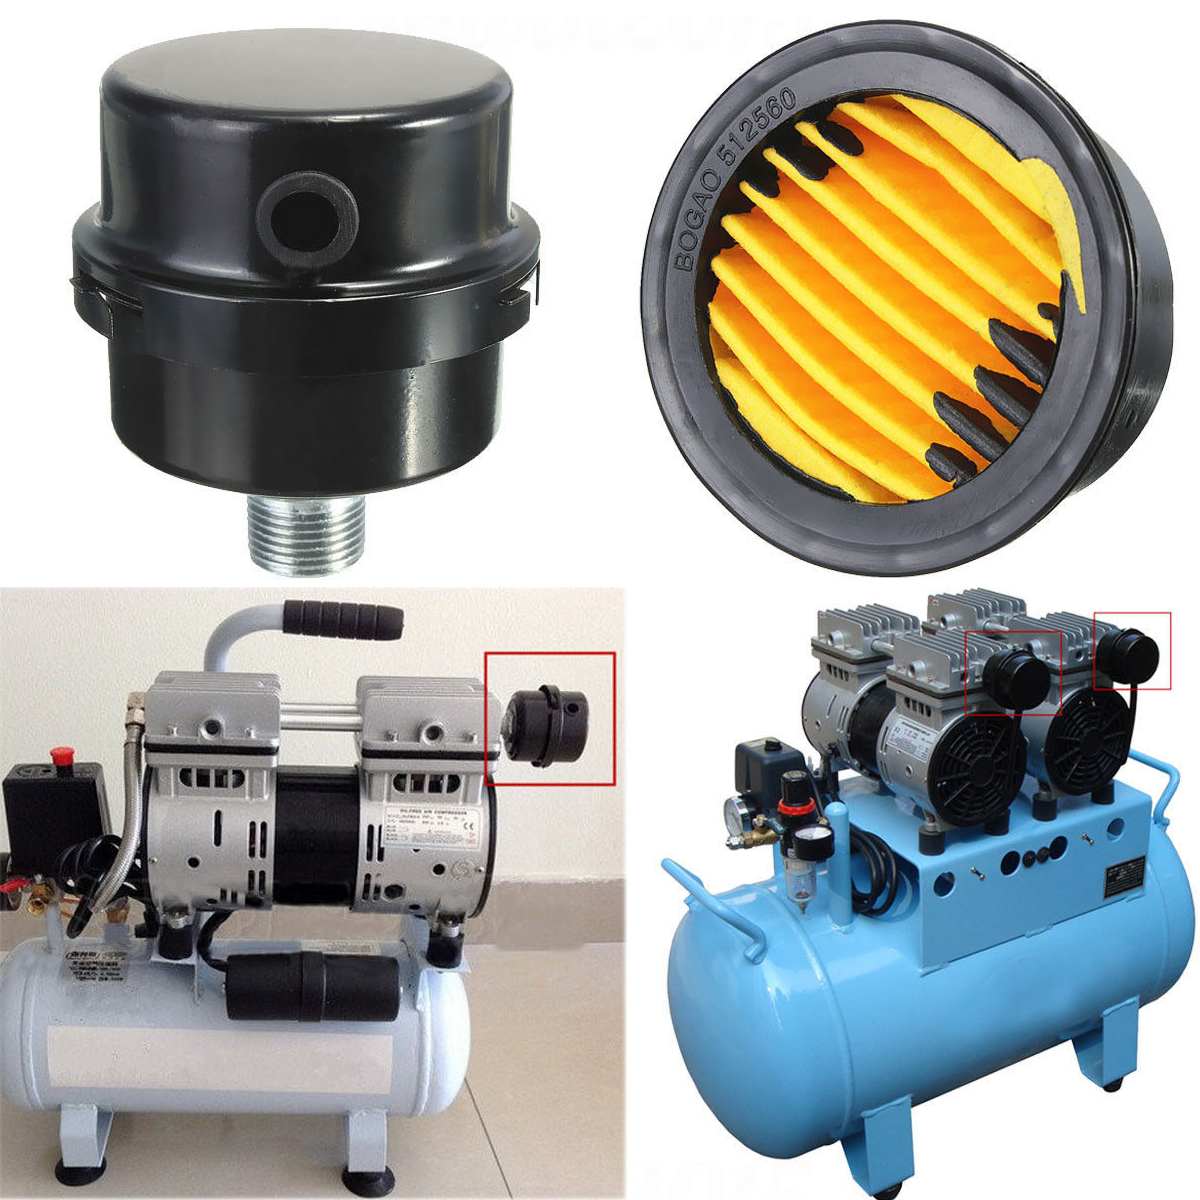 1pc Black Metal Air Intake Filter Silencer 3/8BSP 16mm Thread Durable Oil Free Air Compressor Inlet Filter Muffler Mayitr air compressor o ring 1 2pt thread oil level sight glass